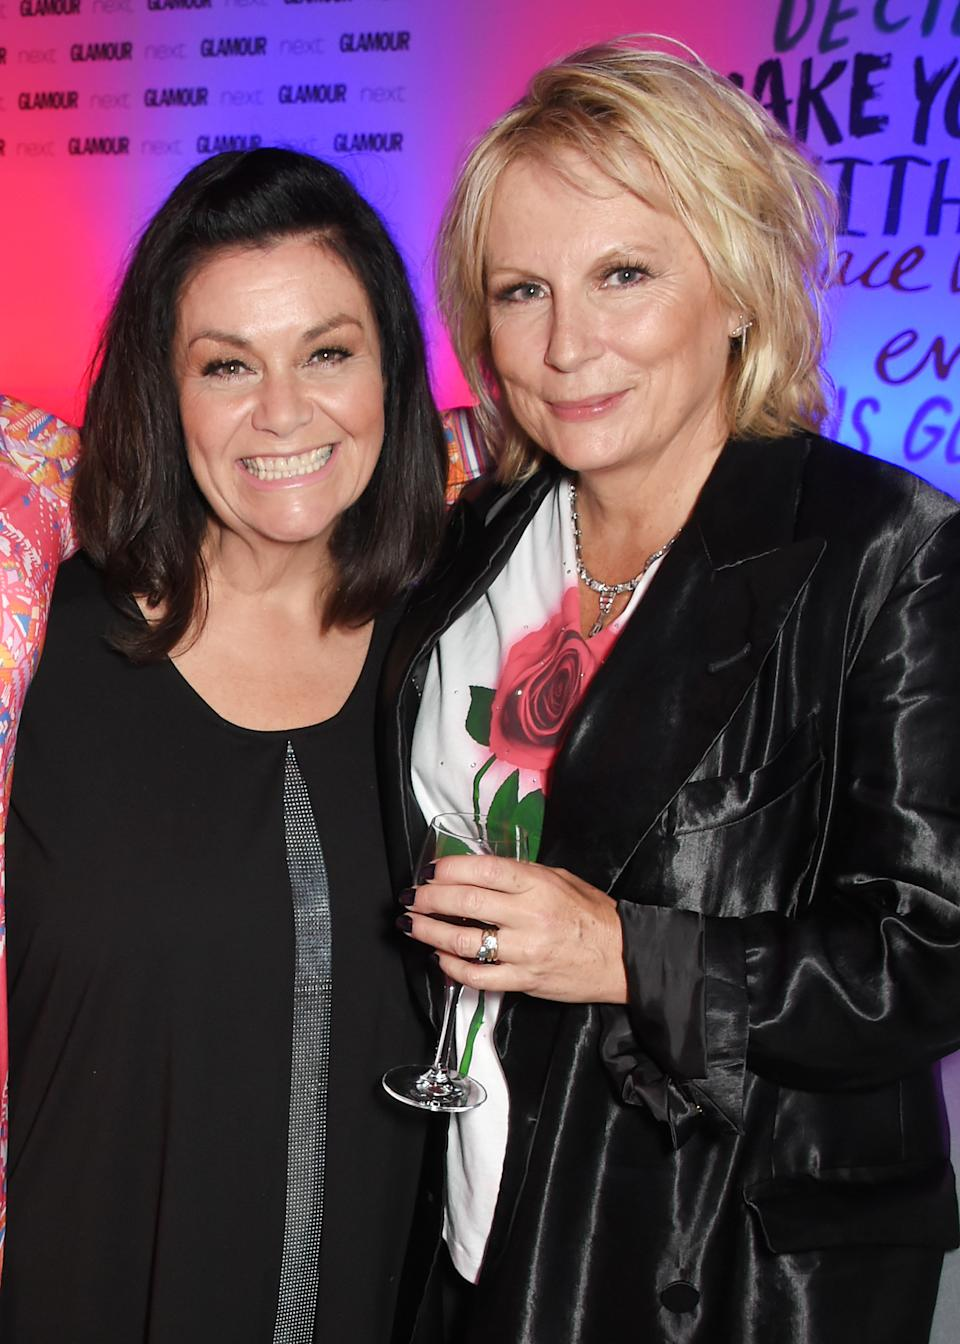 LONDON, ENGLAND - JUNE 06:  Dawn French (L) and Jennifer Saunders attend the Glamour Women of The Year Awards 2017 in Berkeley Square Gardens on June 6, 2017 in London, England.  (Photo by David M Benett/Dave Benett/Getty Images)